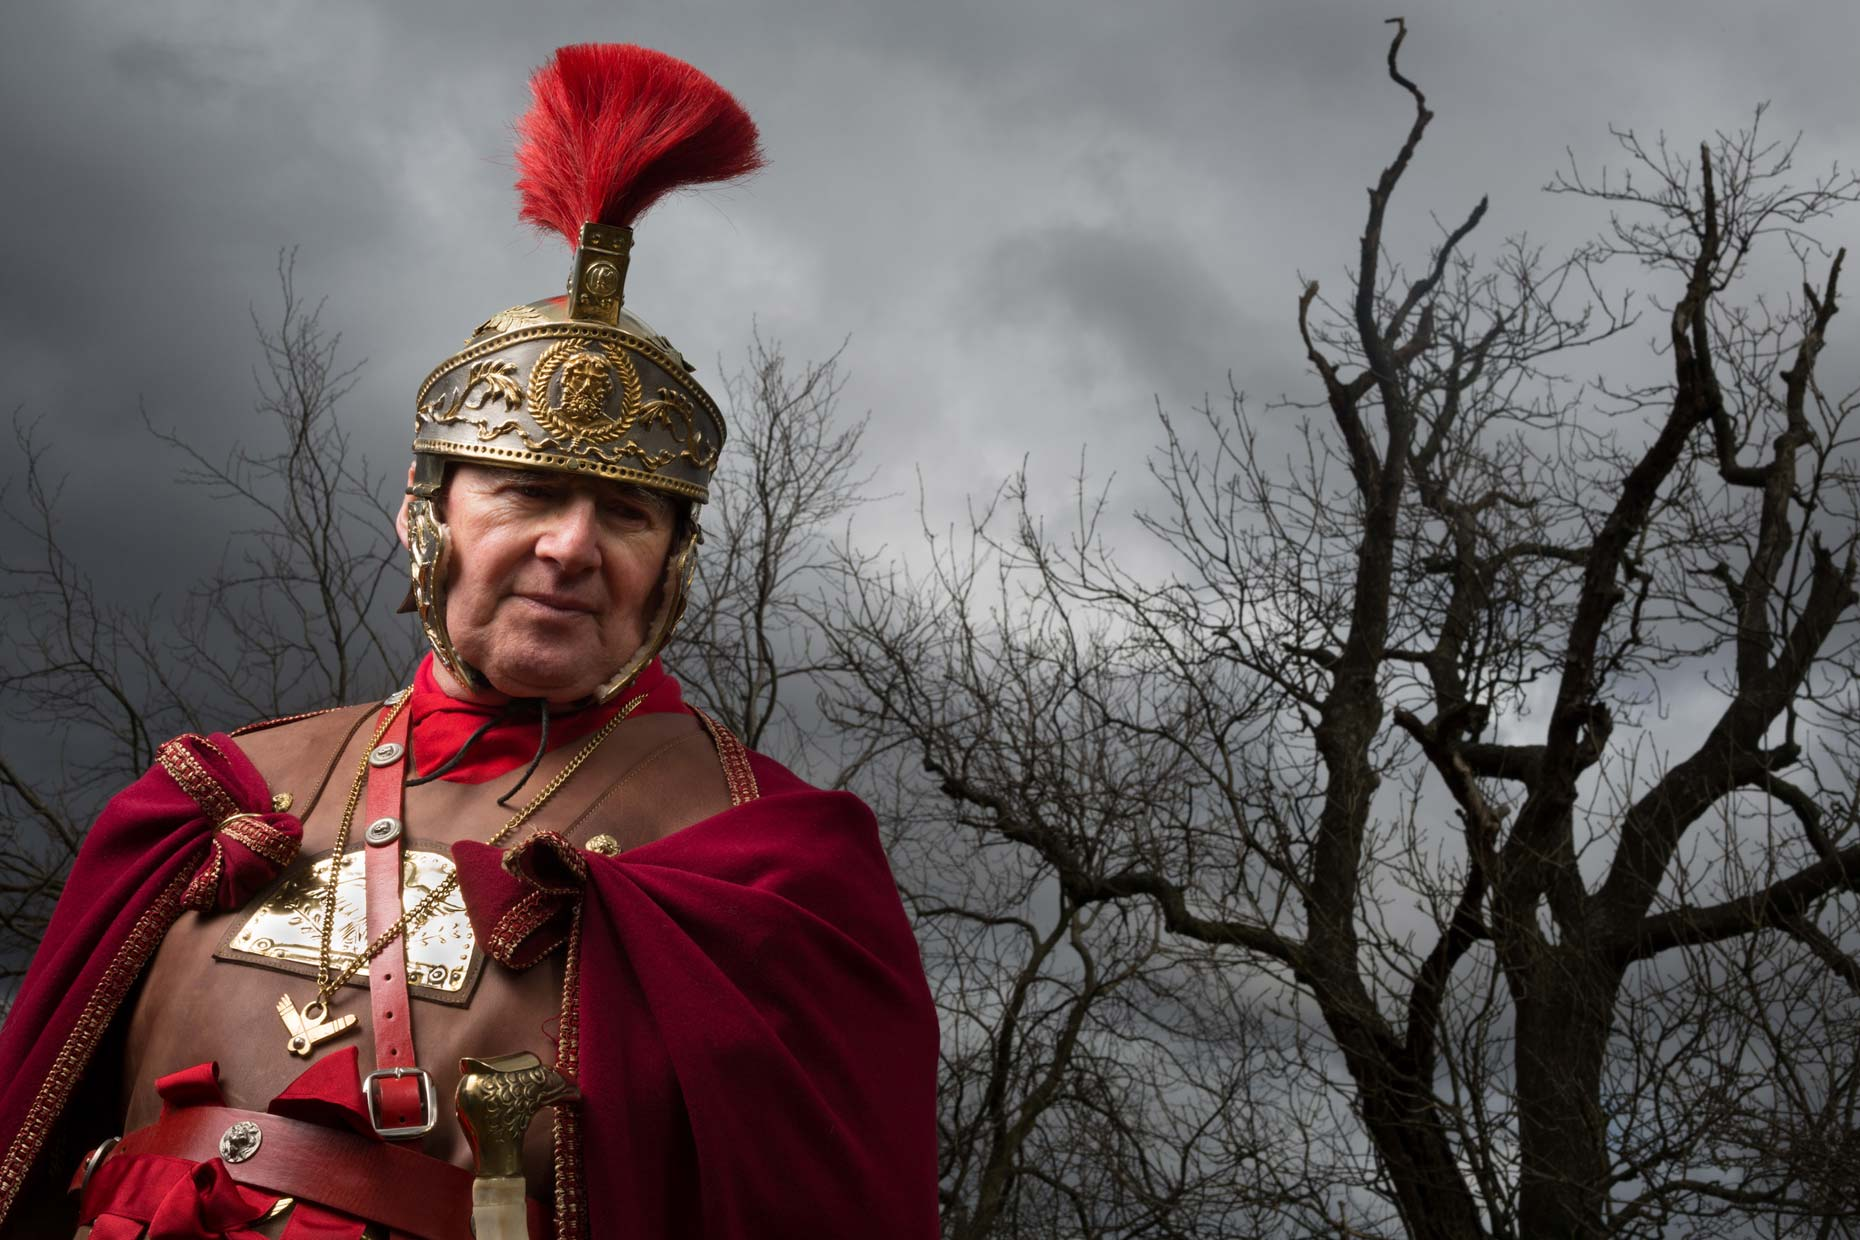 Portrait of Roman Centurion in Scotland